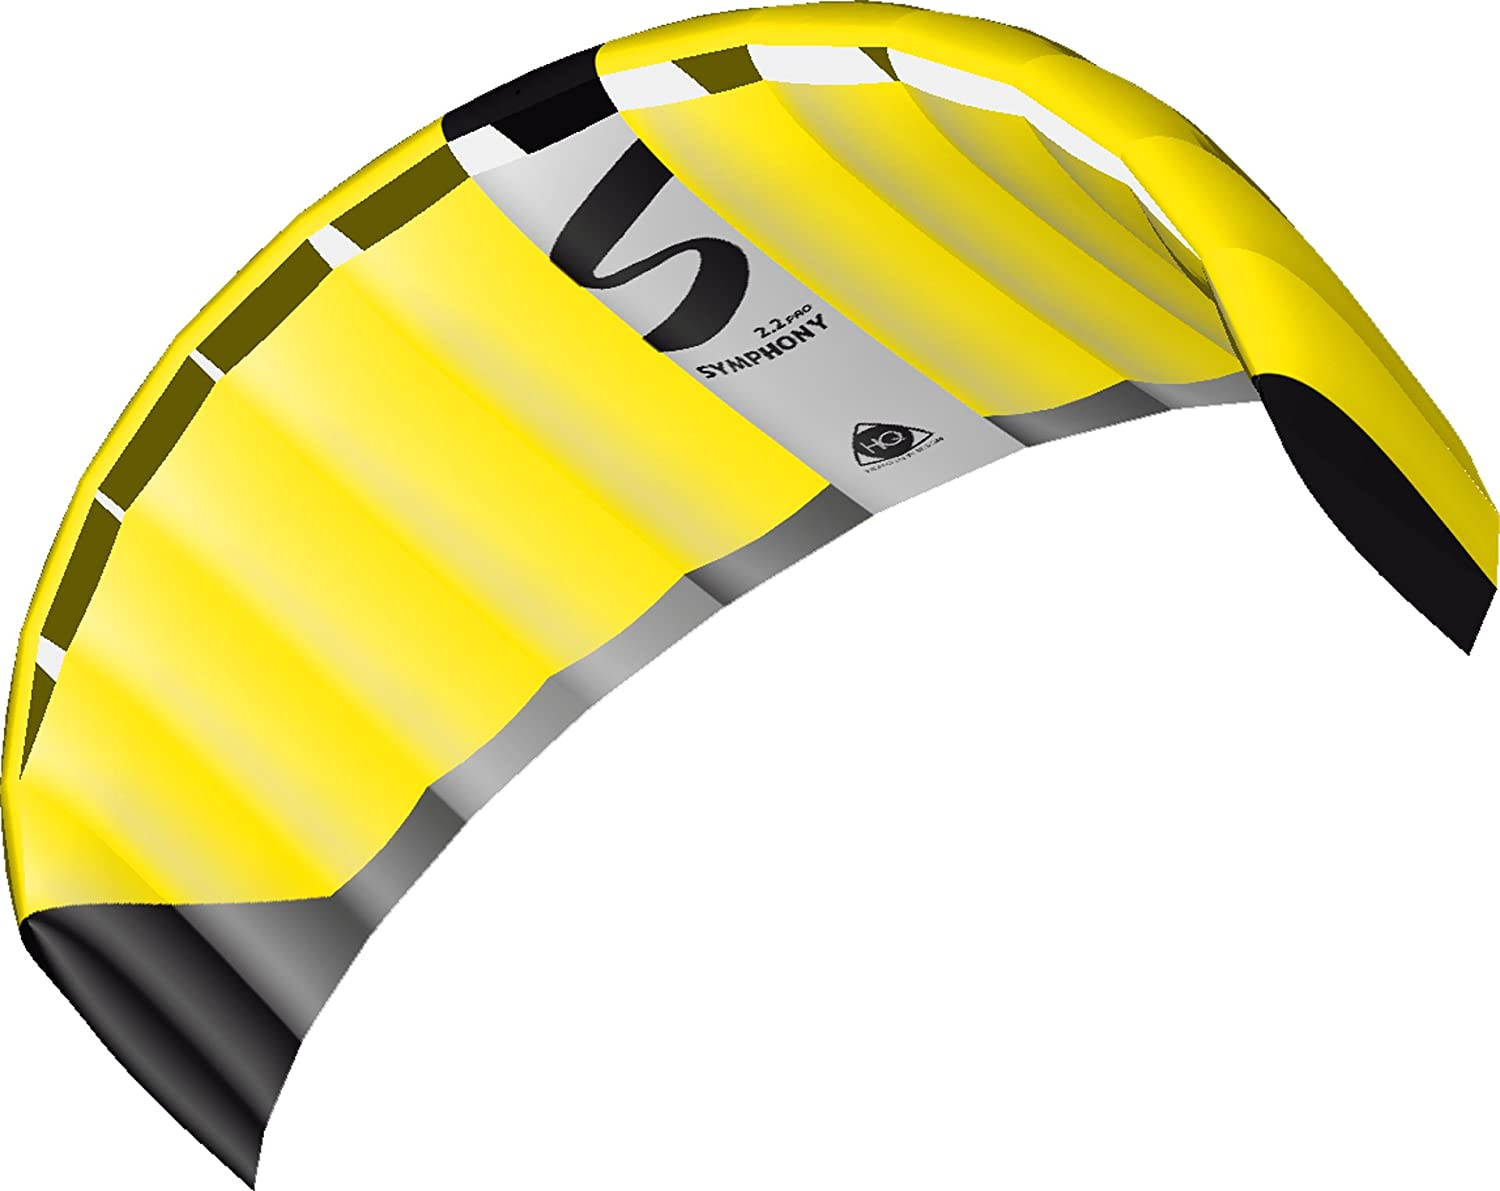 HQ Same day shipping Kites Dual-line Outdoor Sports P Symphony Activities Cheap SALE Start Foil and